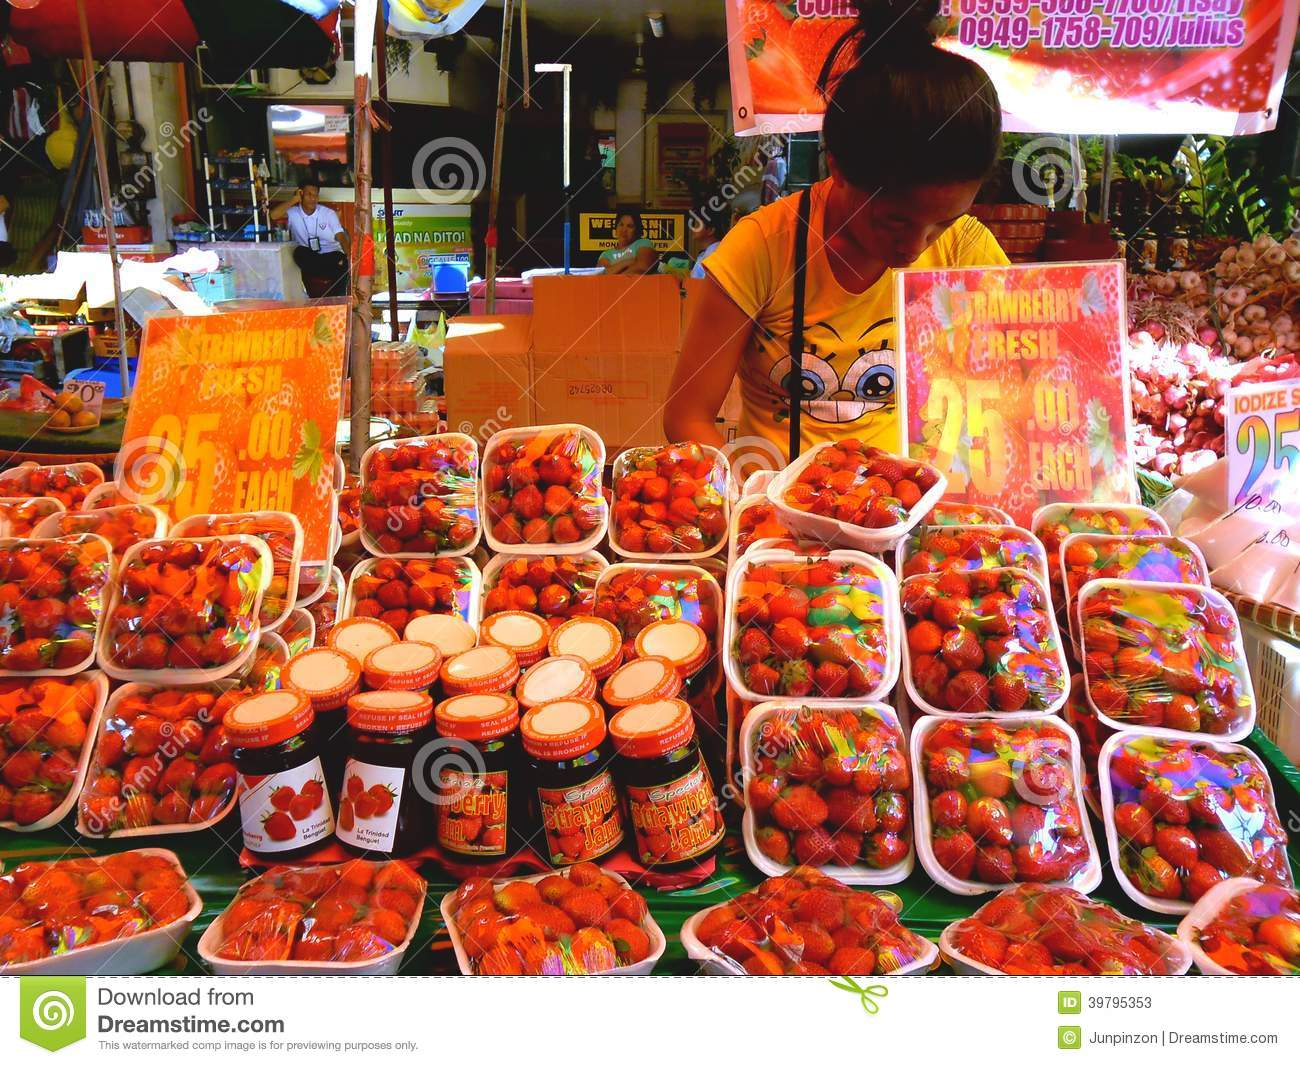 street food business plan philippines eastern